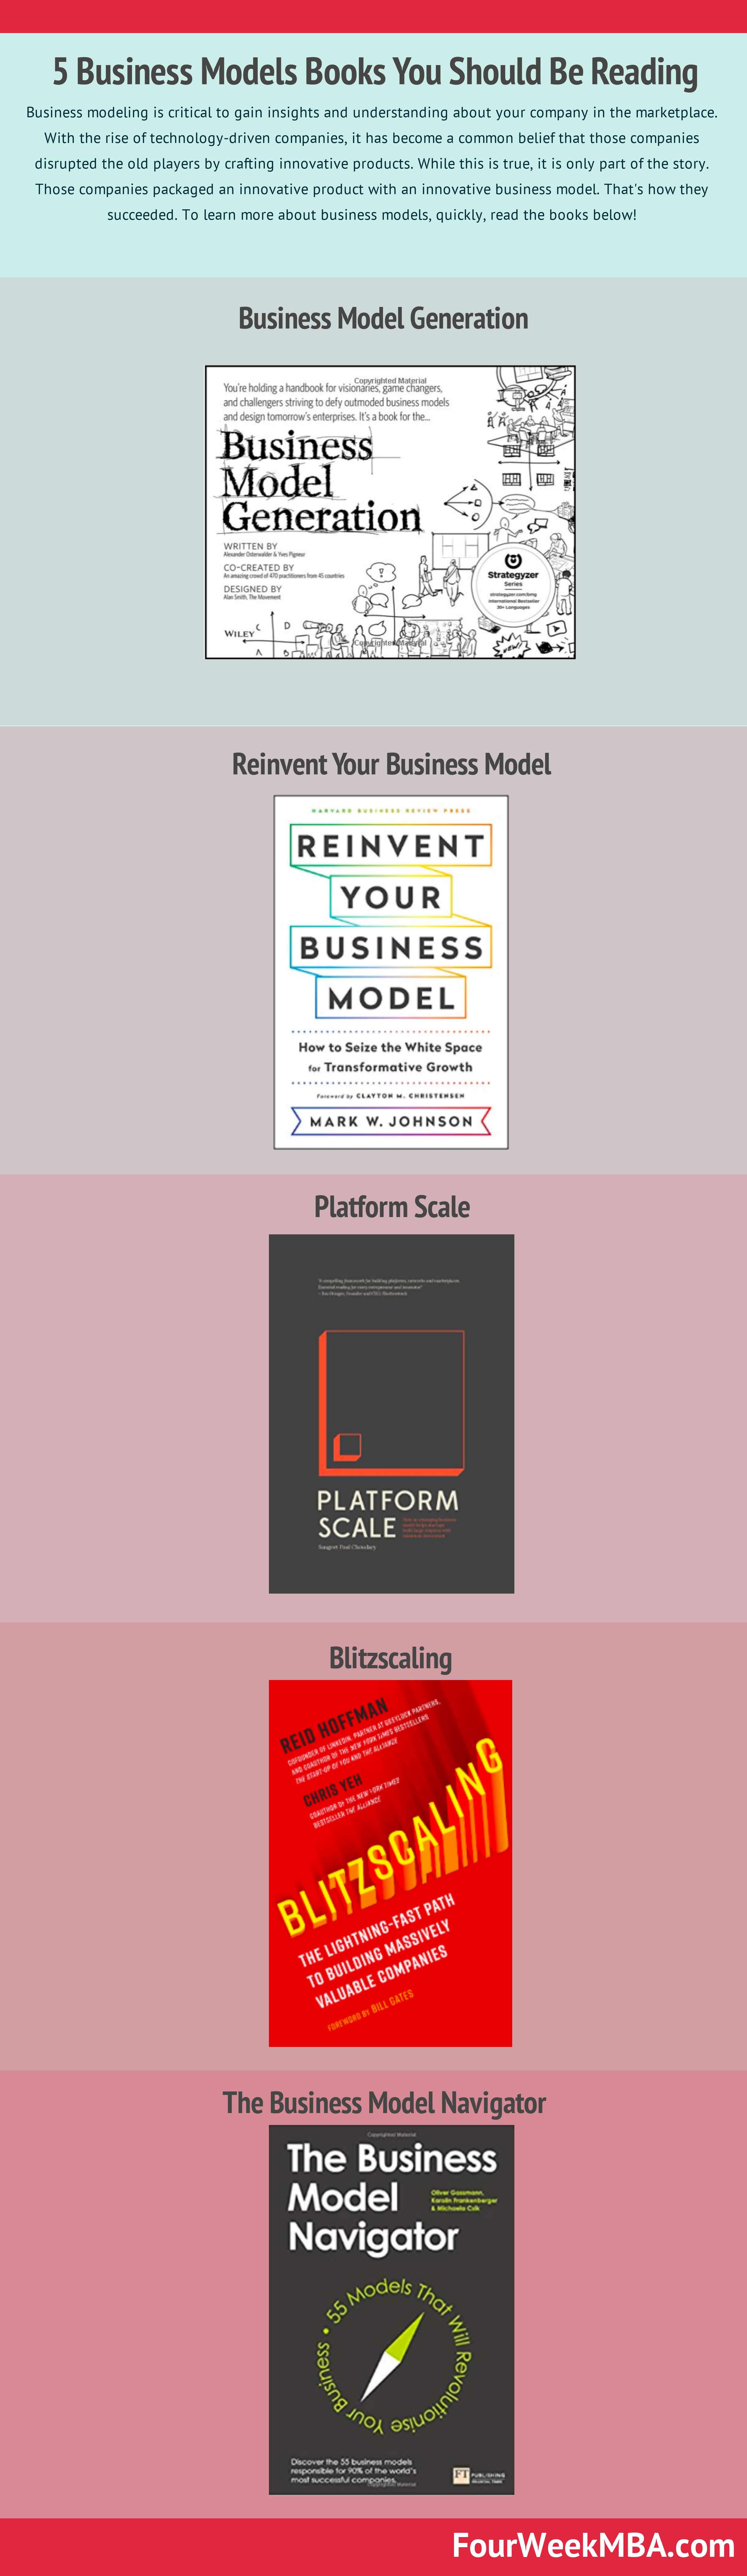 5-business-models-books-you-should-be-reading